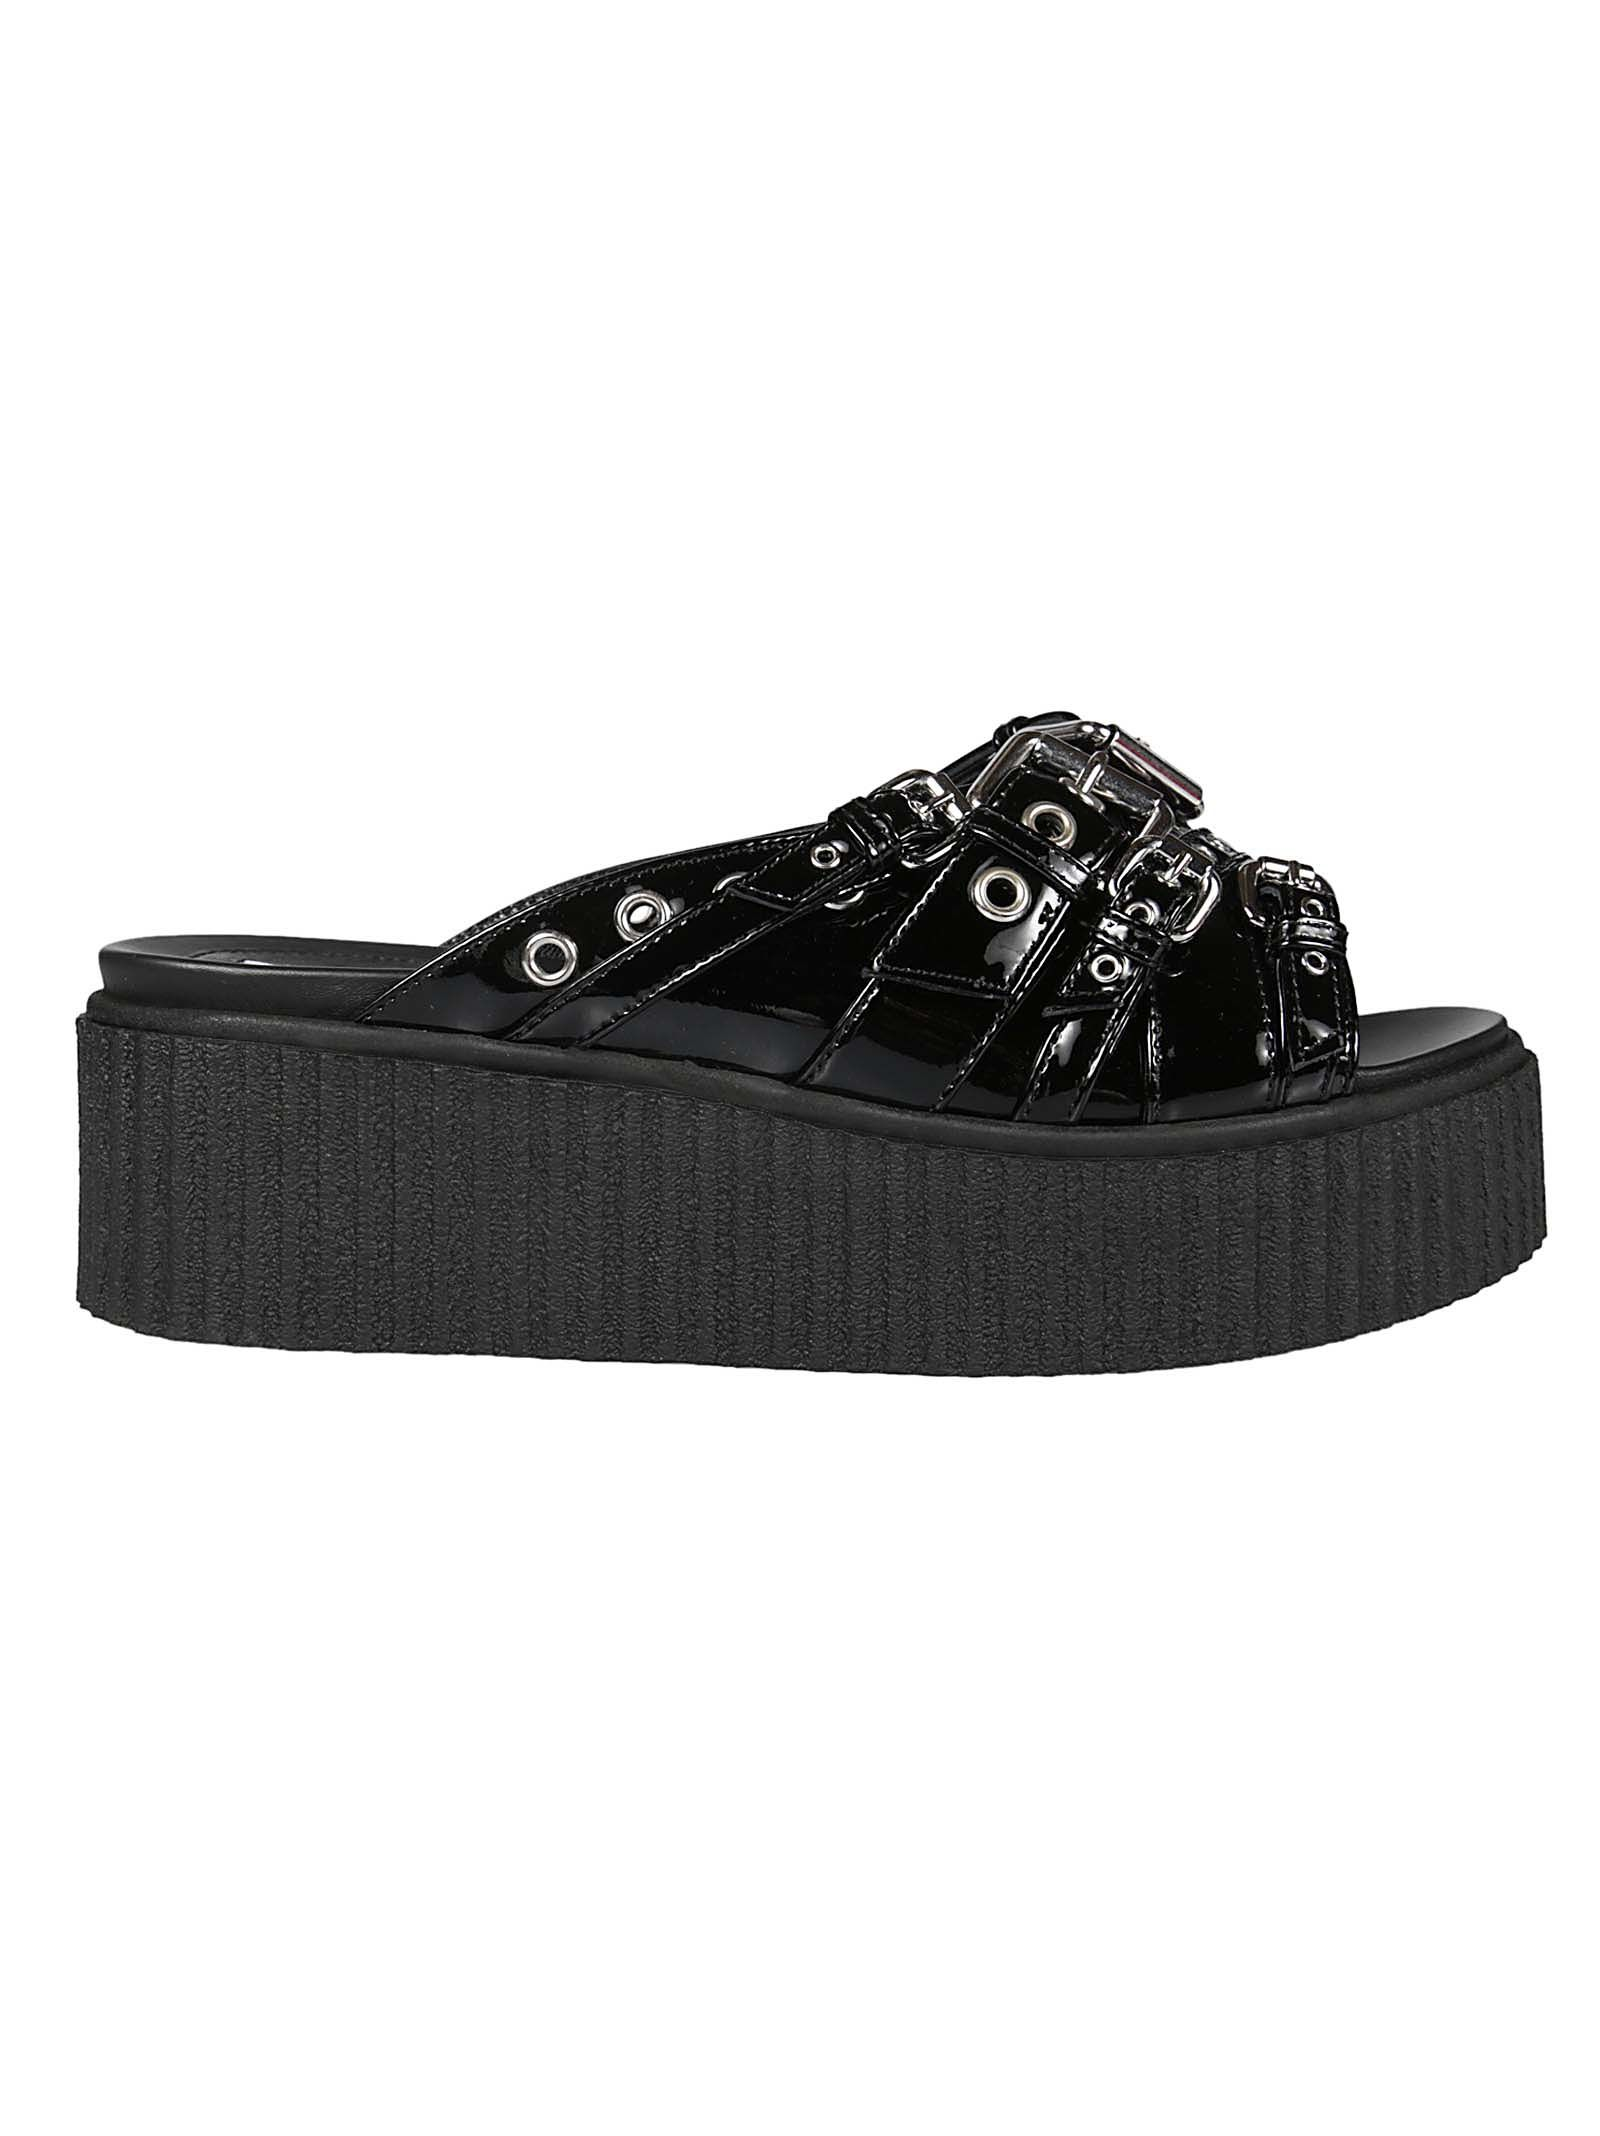 100% Guaranteed Online Alexander McQueen Dusk Eyelet Sliders Buy Online Cheap Inexpensive Clearance Official IW2kQz9